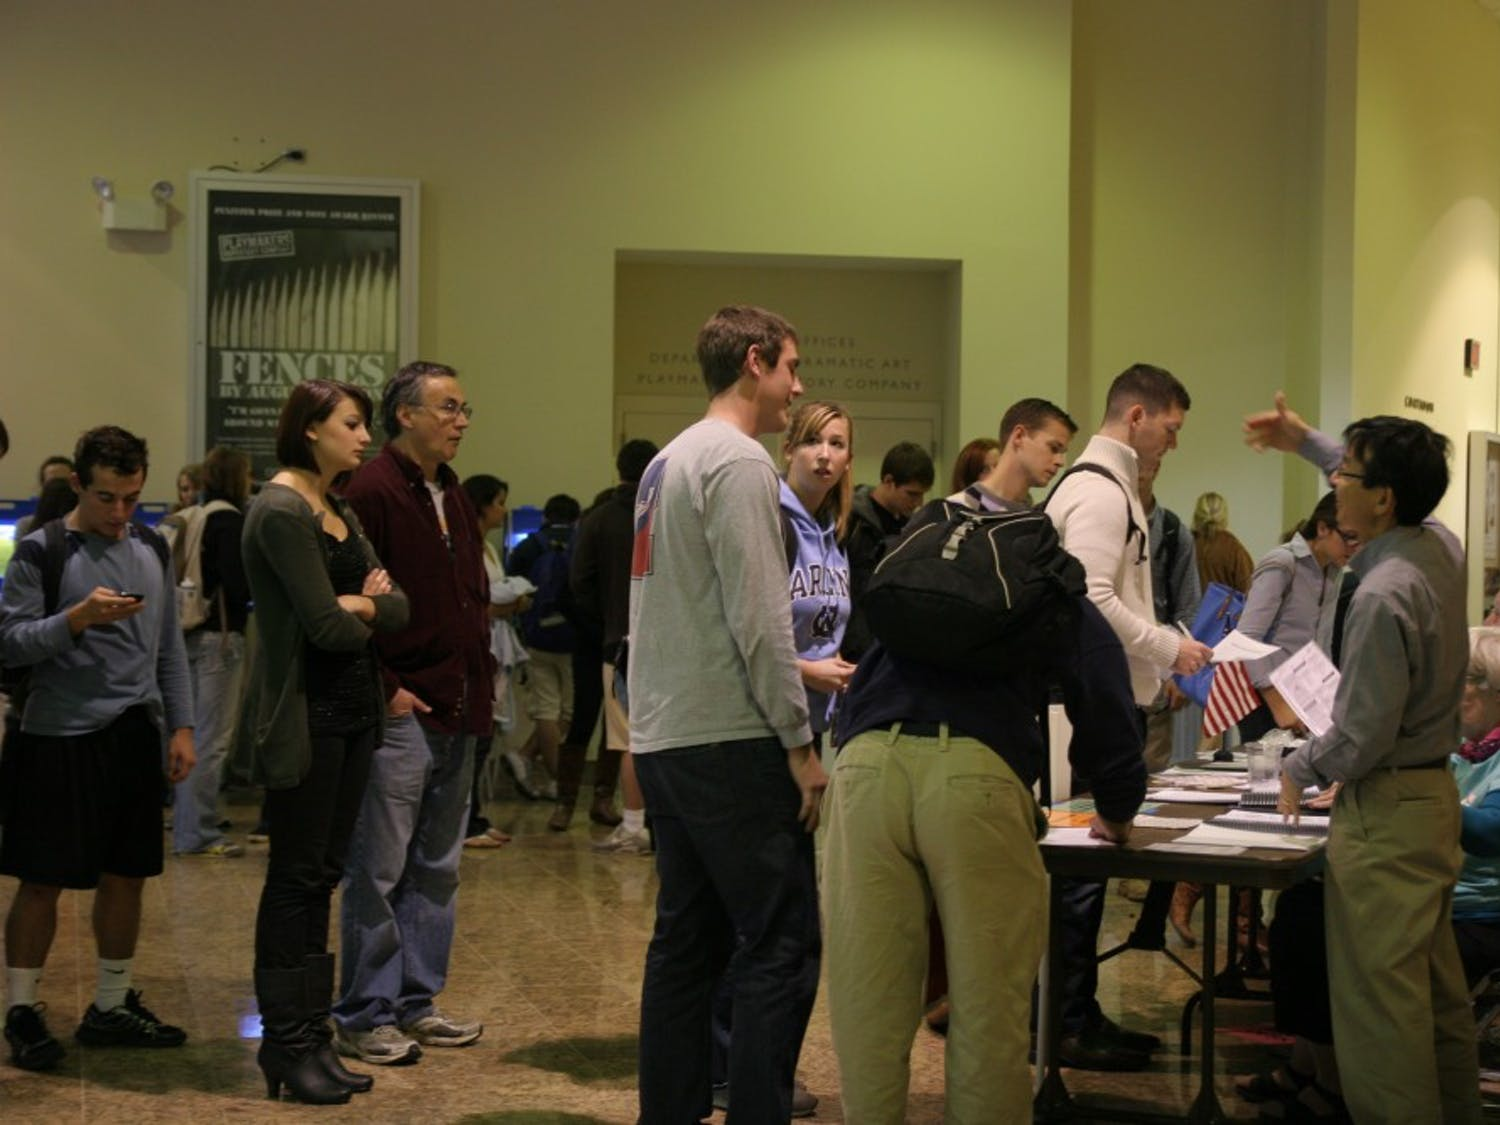 Though many students found the voting location confusing Tuesday, voting was actually taking place at the Center for Dramatic Art, not Morehead Planetarium. Once inside, the confusion continued as students had difficulty figuring out which line to stand in.